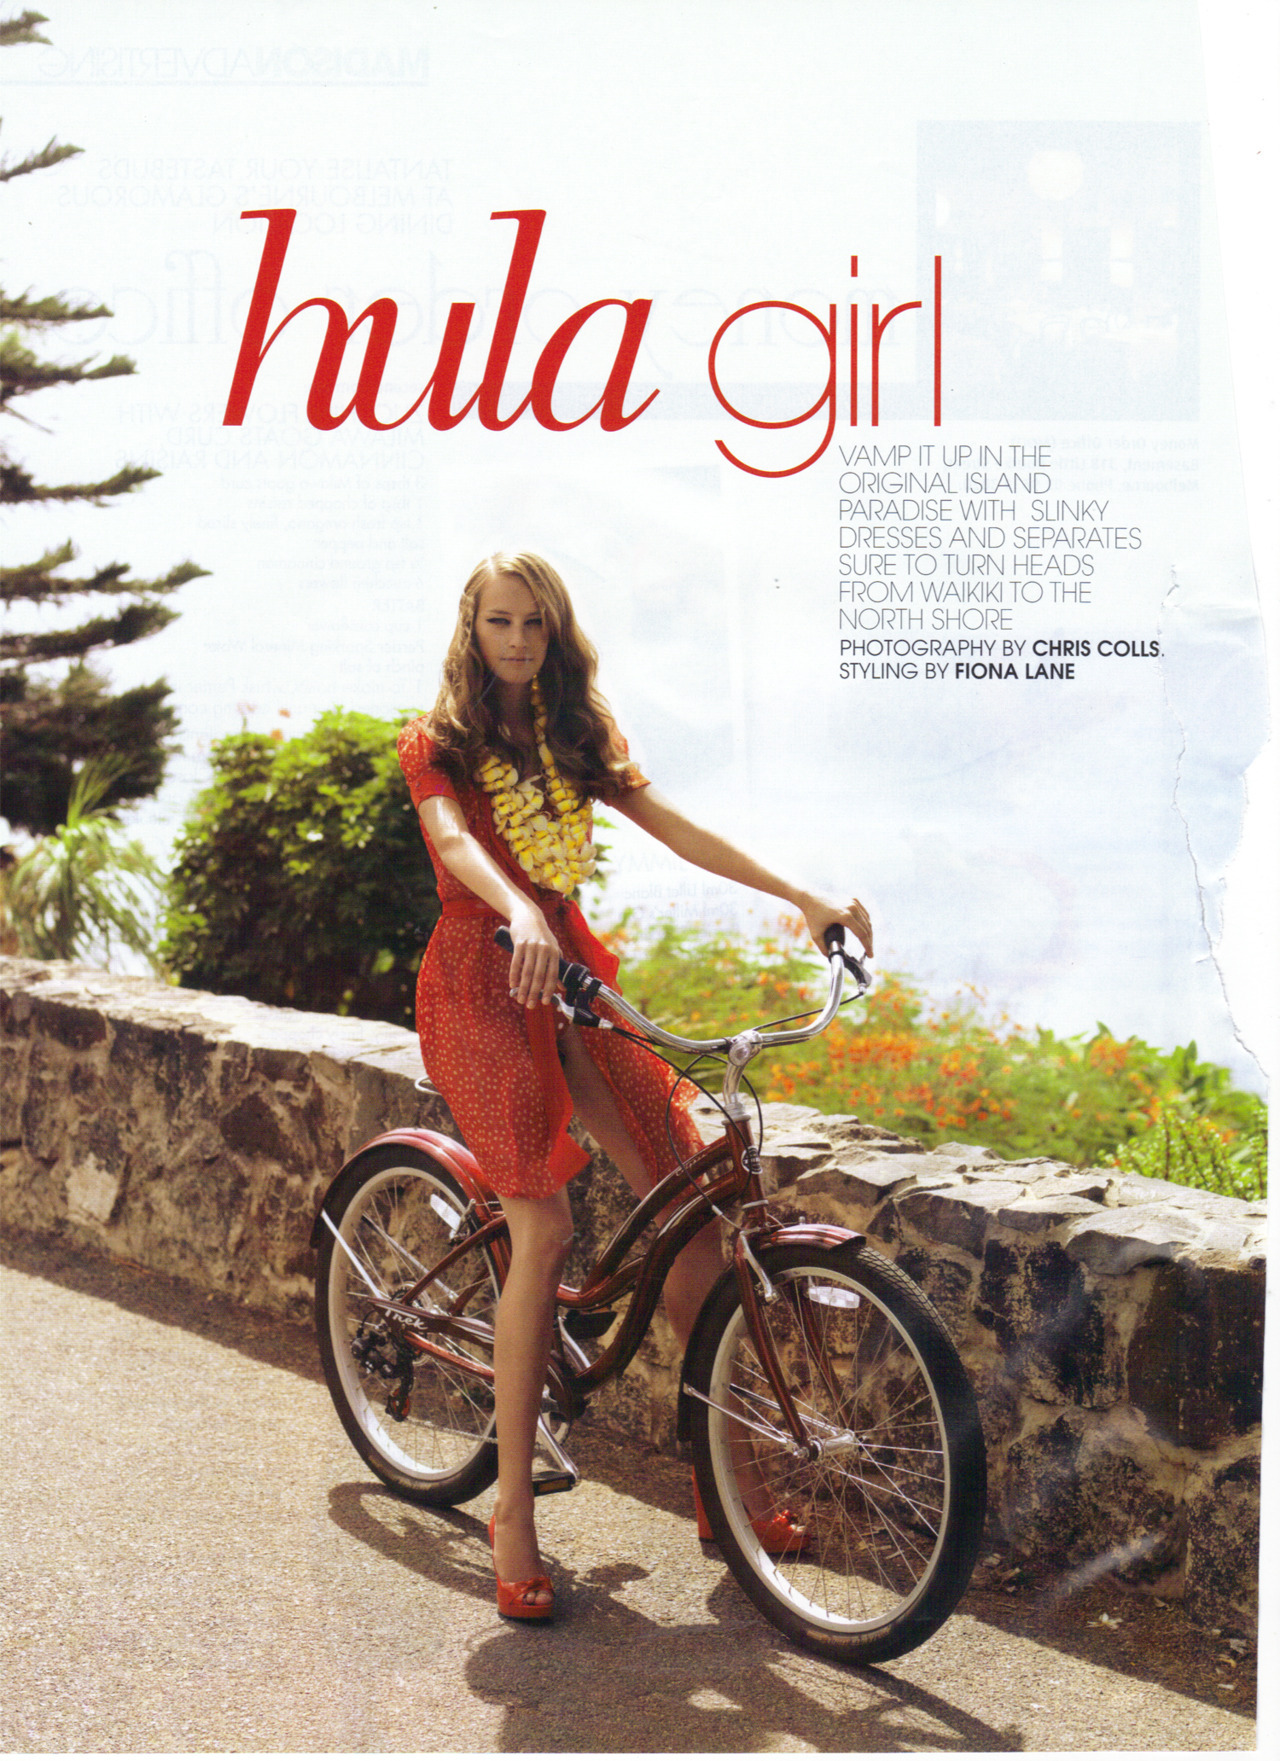 keelymalady:  places i'd rather be 'hula girl'photography by chris colls | styling by fiona lanemadison magazine, unsure exact date  This looks like Diamond Head Road of the Oahu's Gold Coast, between Waikiki and Sandy Beach. Anybody can be a Hula girl at anytime and anywhere in Hawaii.